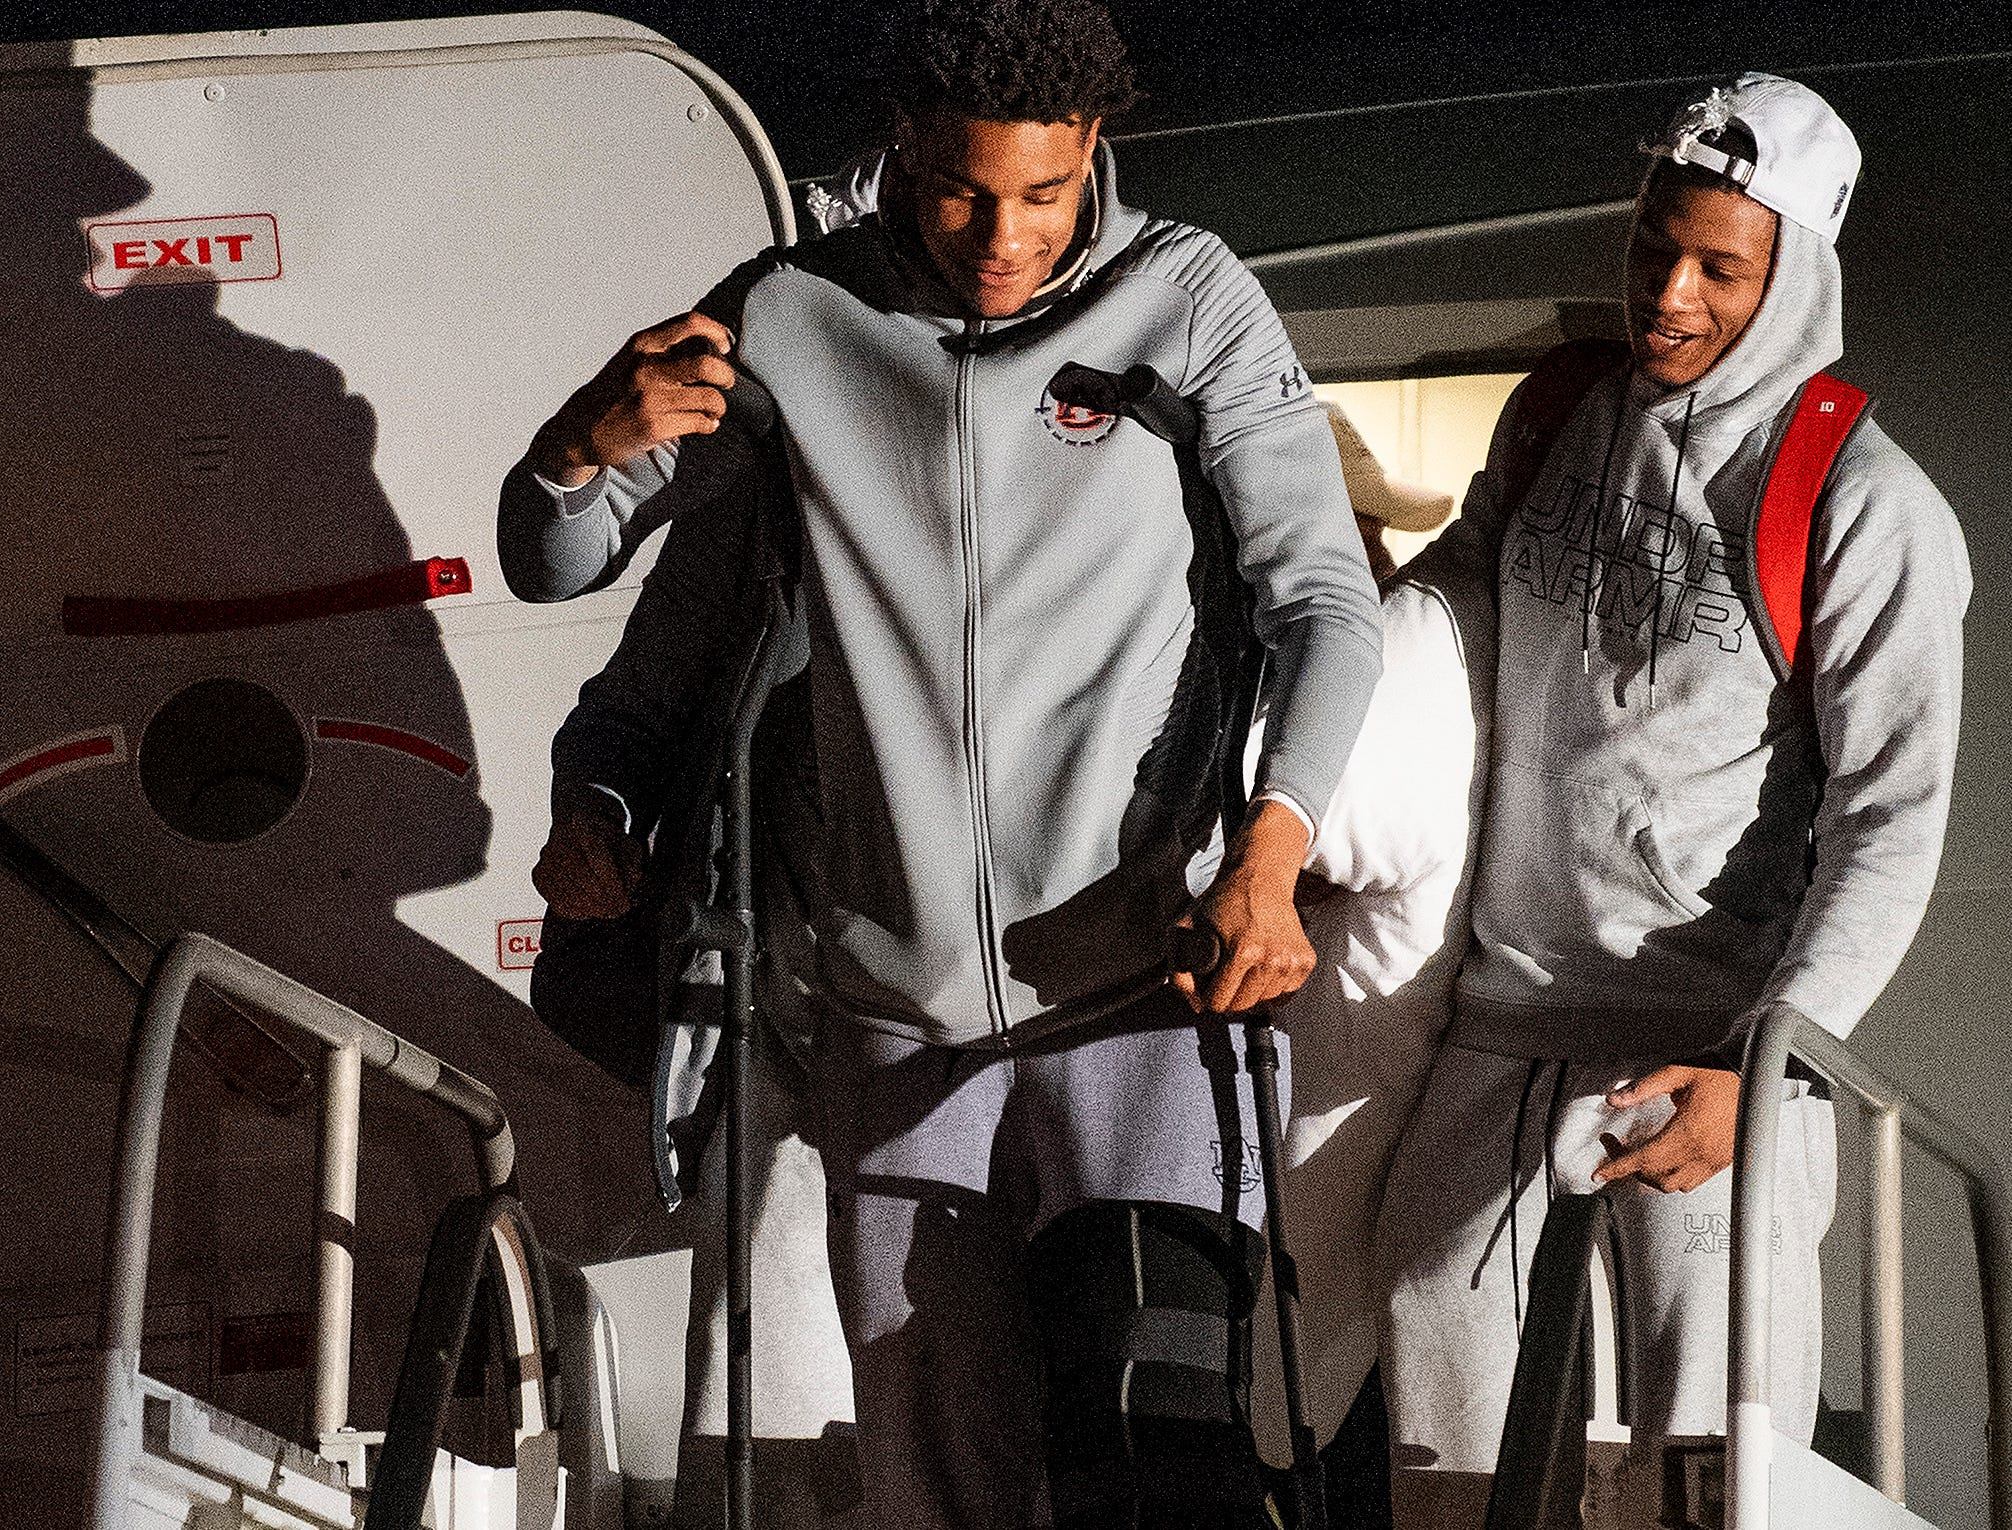 Injured player Chuma Okeke makes his way from the jet as the Auburn men's basketball team arrives at the Montgomery, Ala., airport on Sunday evening March 31, 2019 after defeating Kentucky in Kansas City to advance to the NCAA Basketball Final Four next weekend.